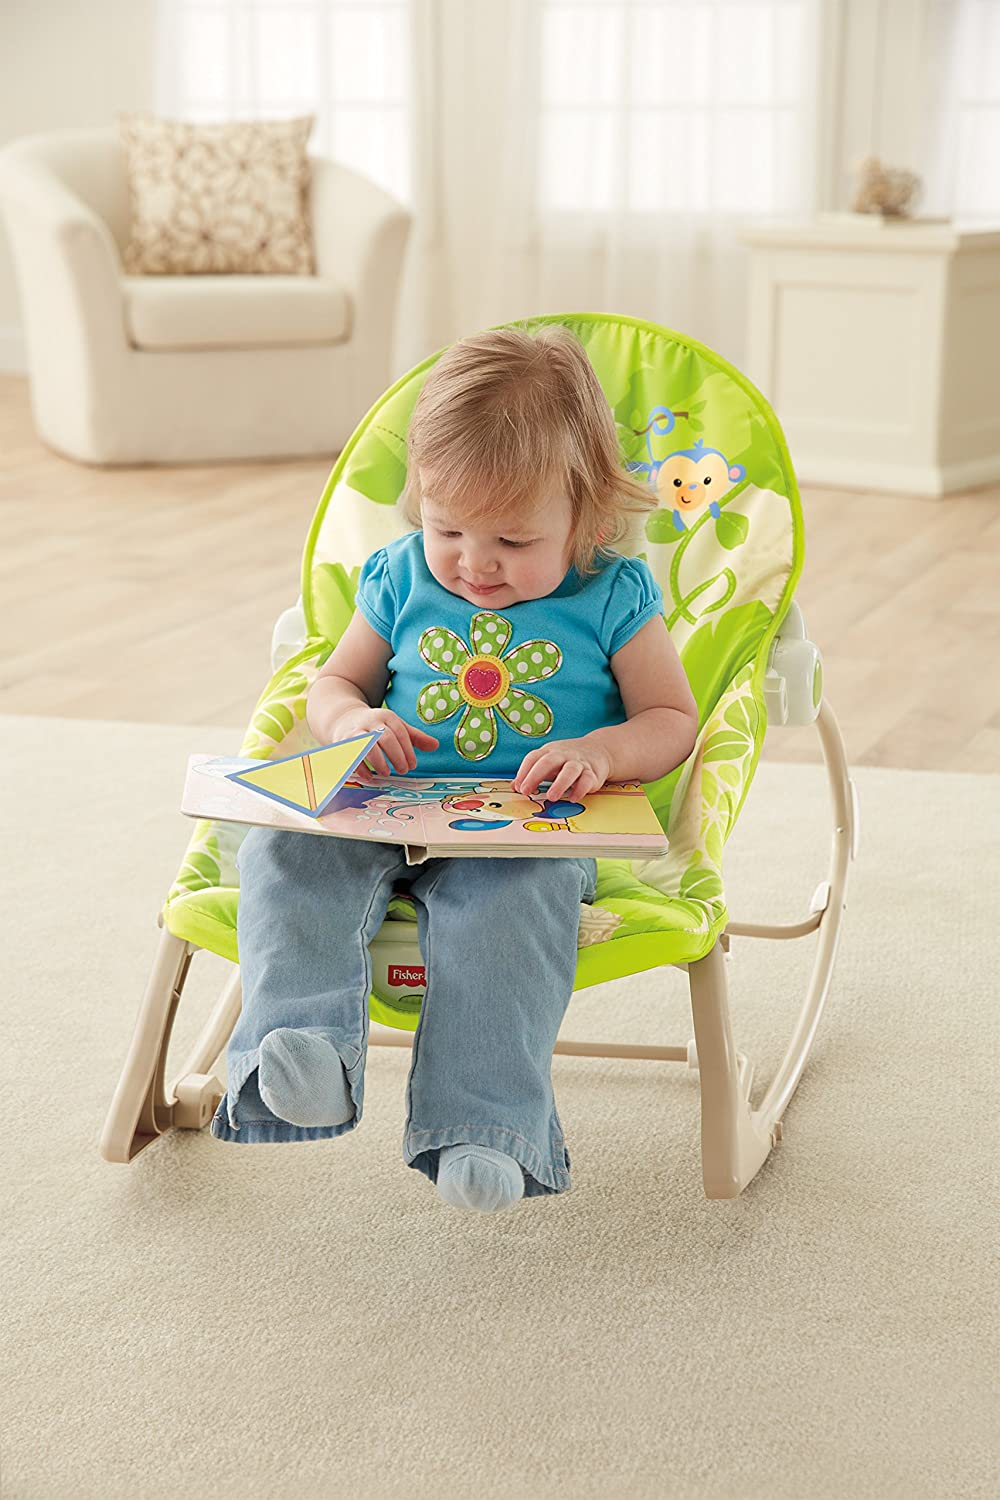 Baby rocking chair fisher price - Baby Rocking Chair Fisher Price 25